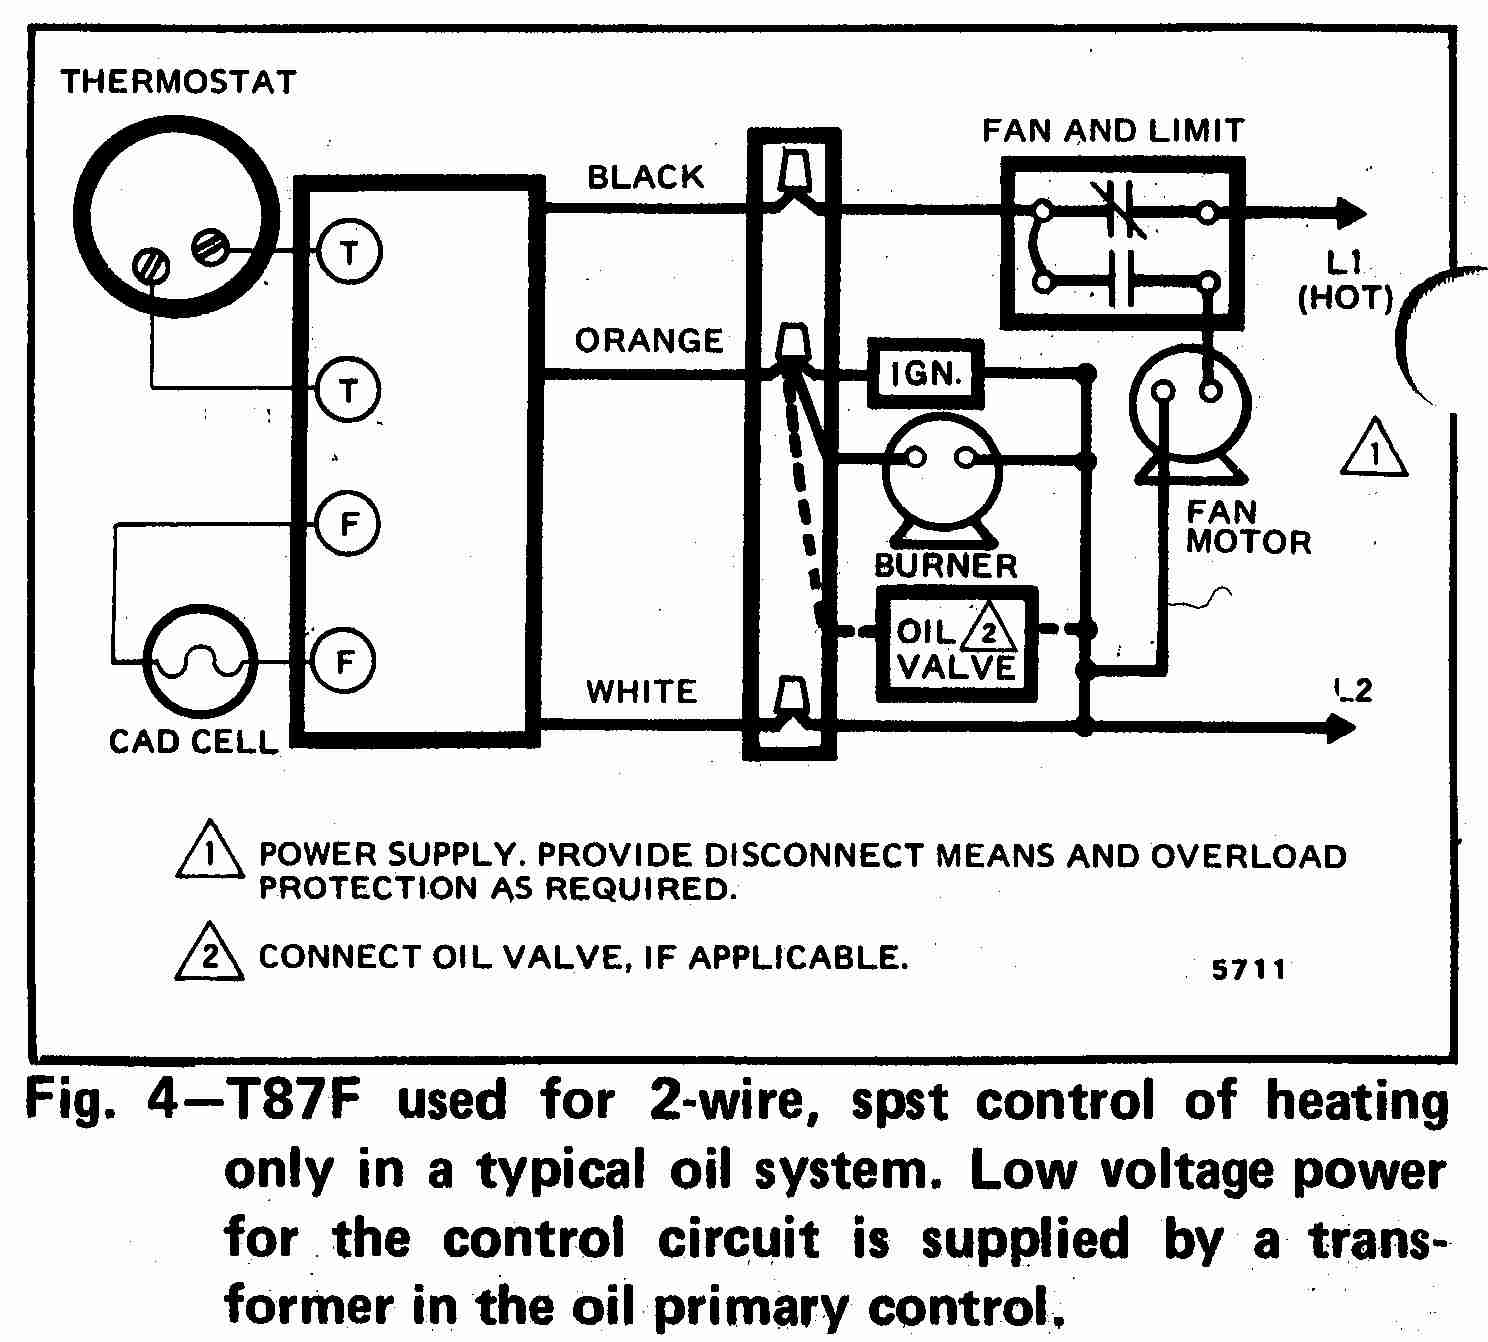 TT_T87F_0002_2W_DJF wiring diagram for thermostat heat pump thermostat wiring \u2022 free LuxPro Thermostat Manual at crackthecode.co